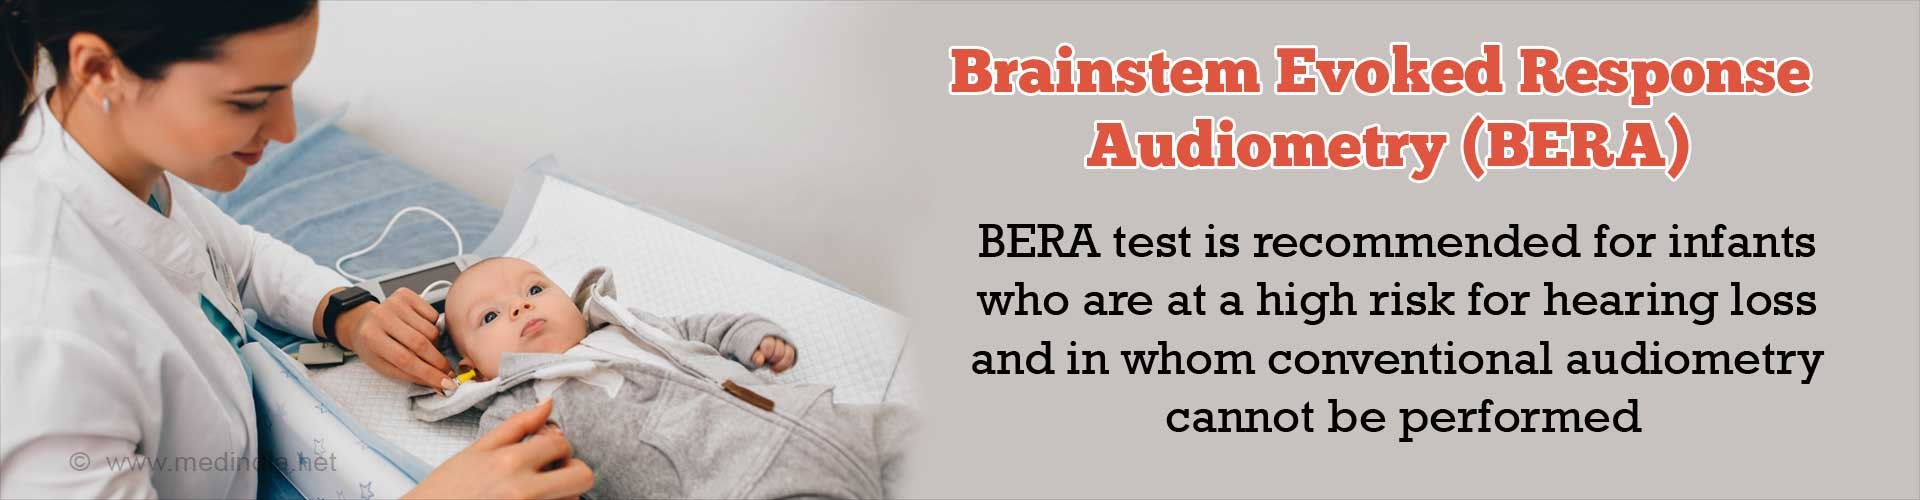 Brainstem Evoked Response Audiometry (BERA)